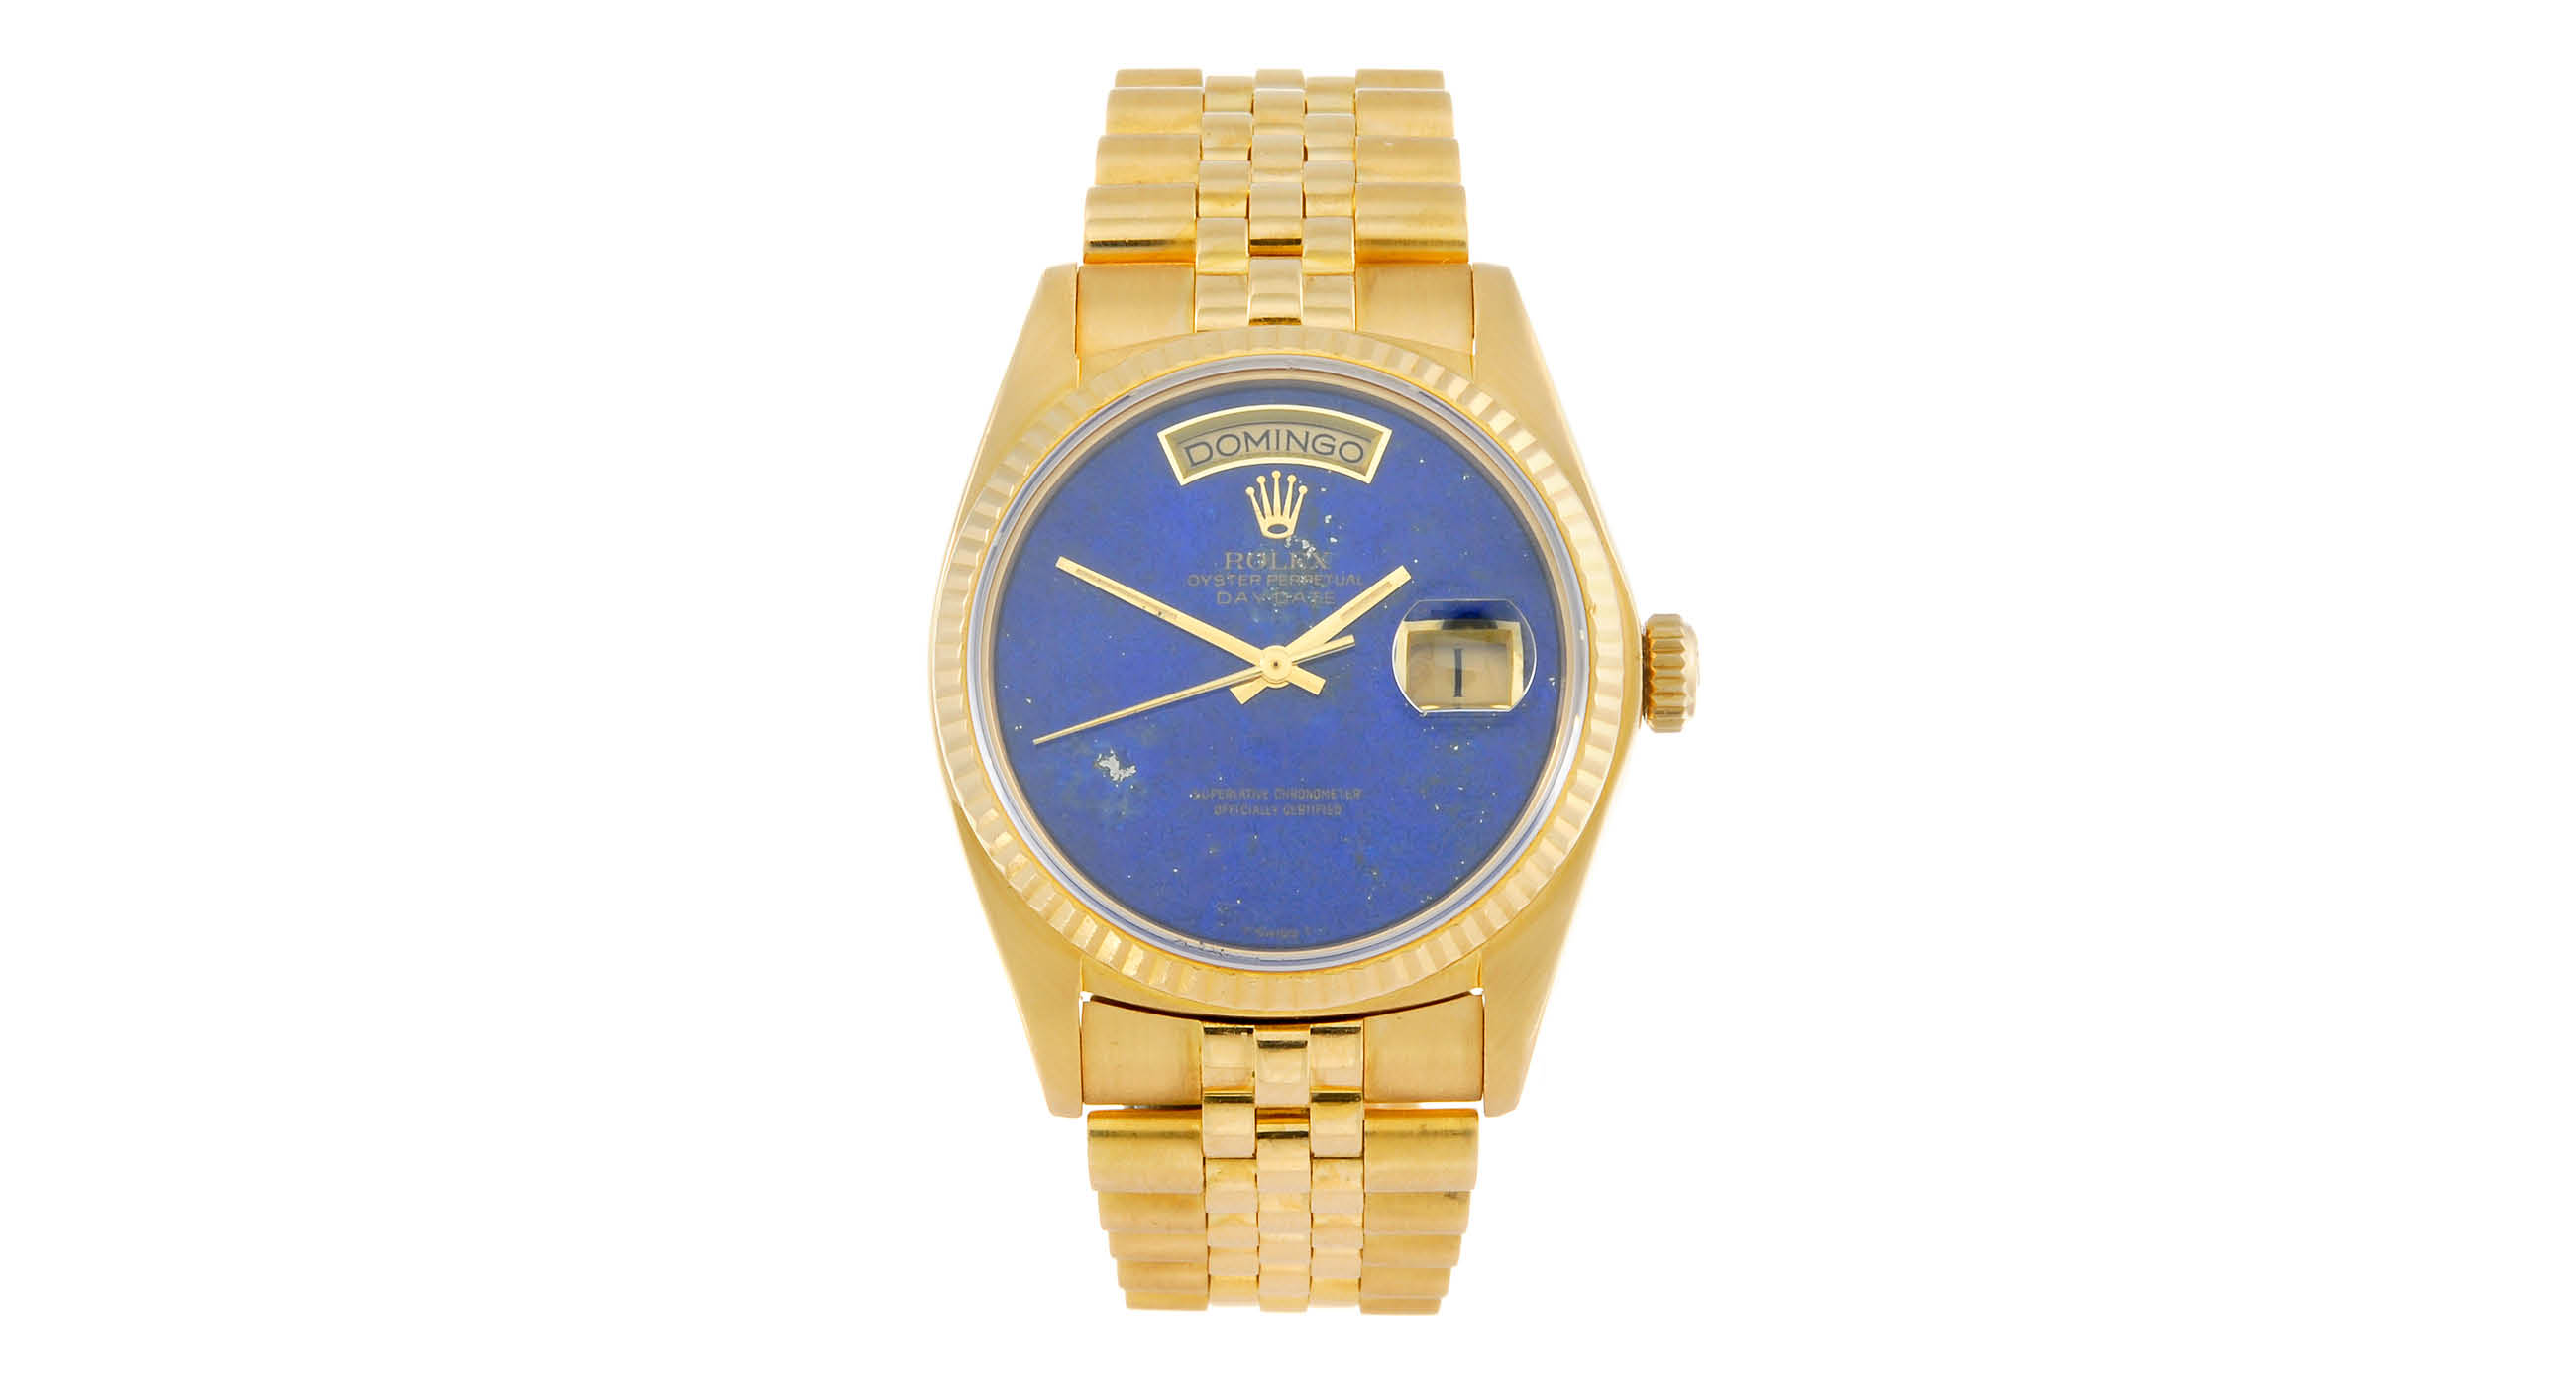 18ct yellow gold Rolex Oyster Perpetual Day-Date Replica Watch